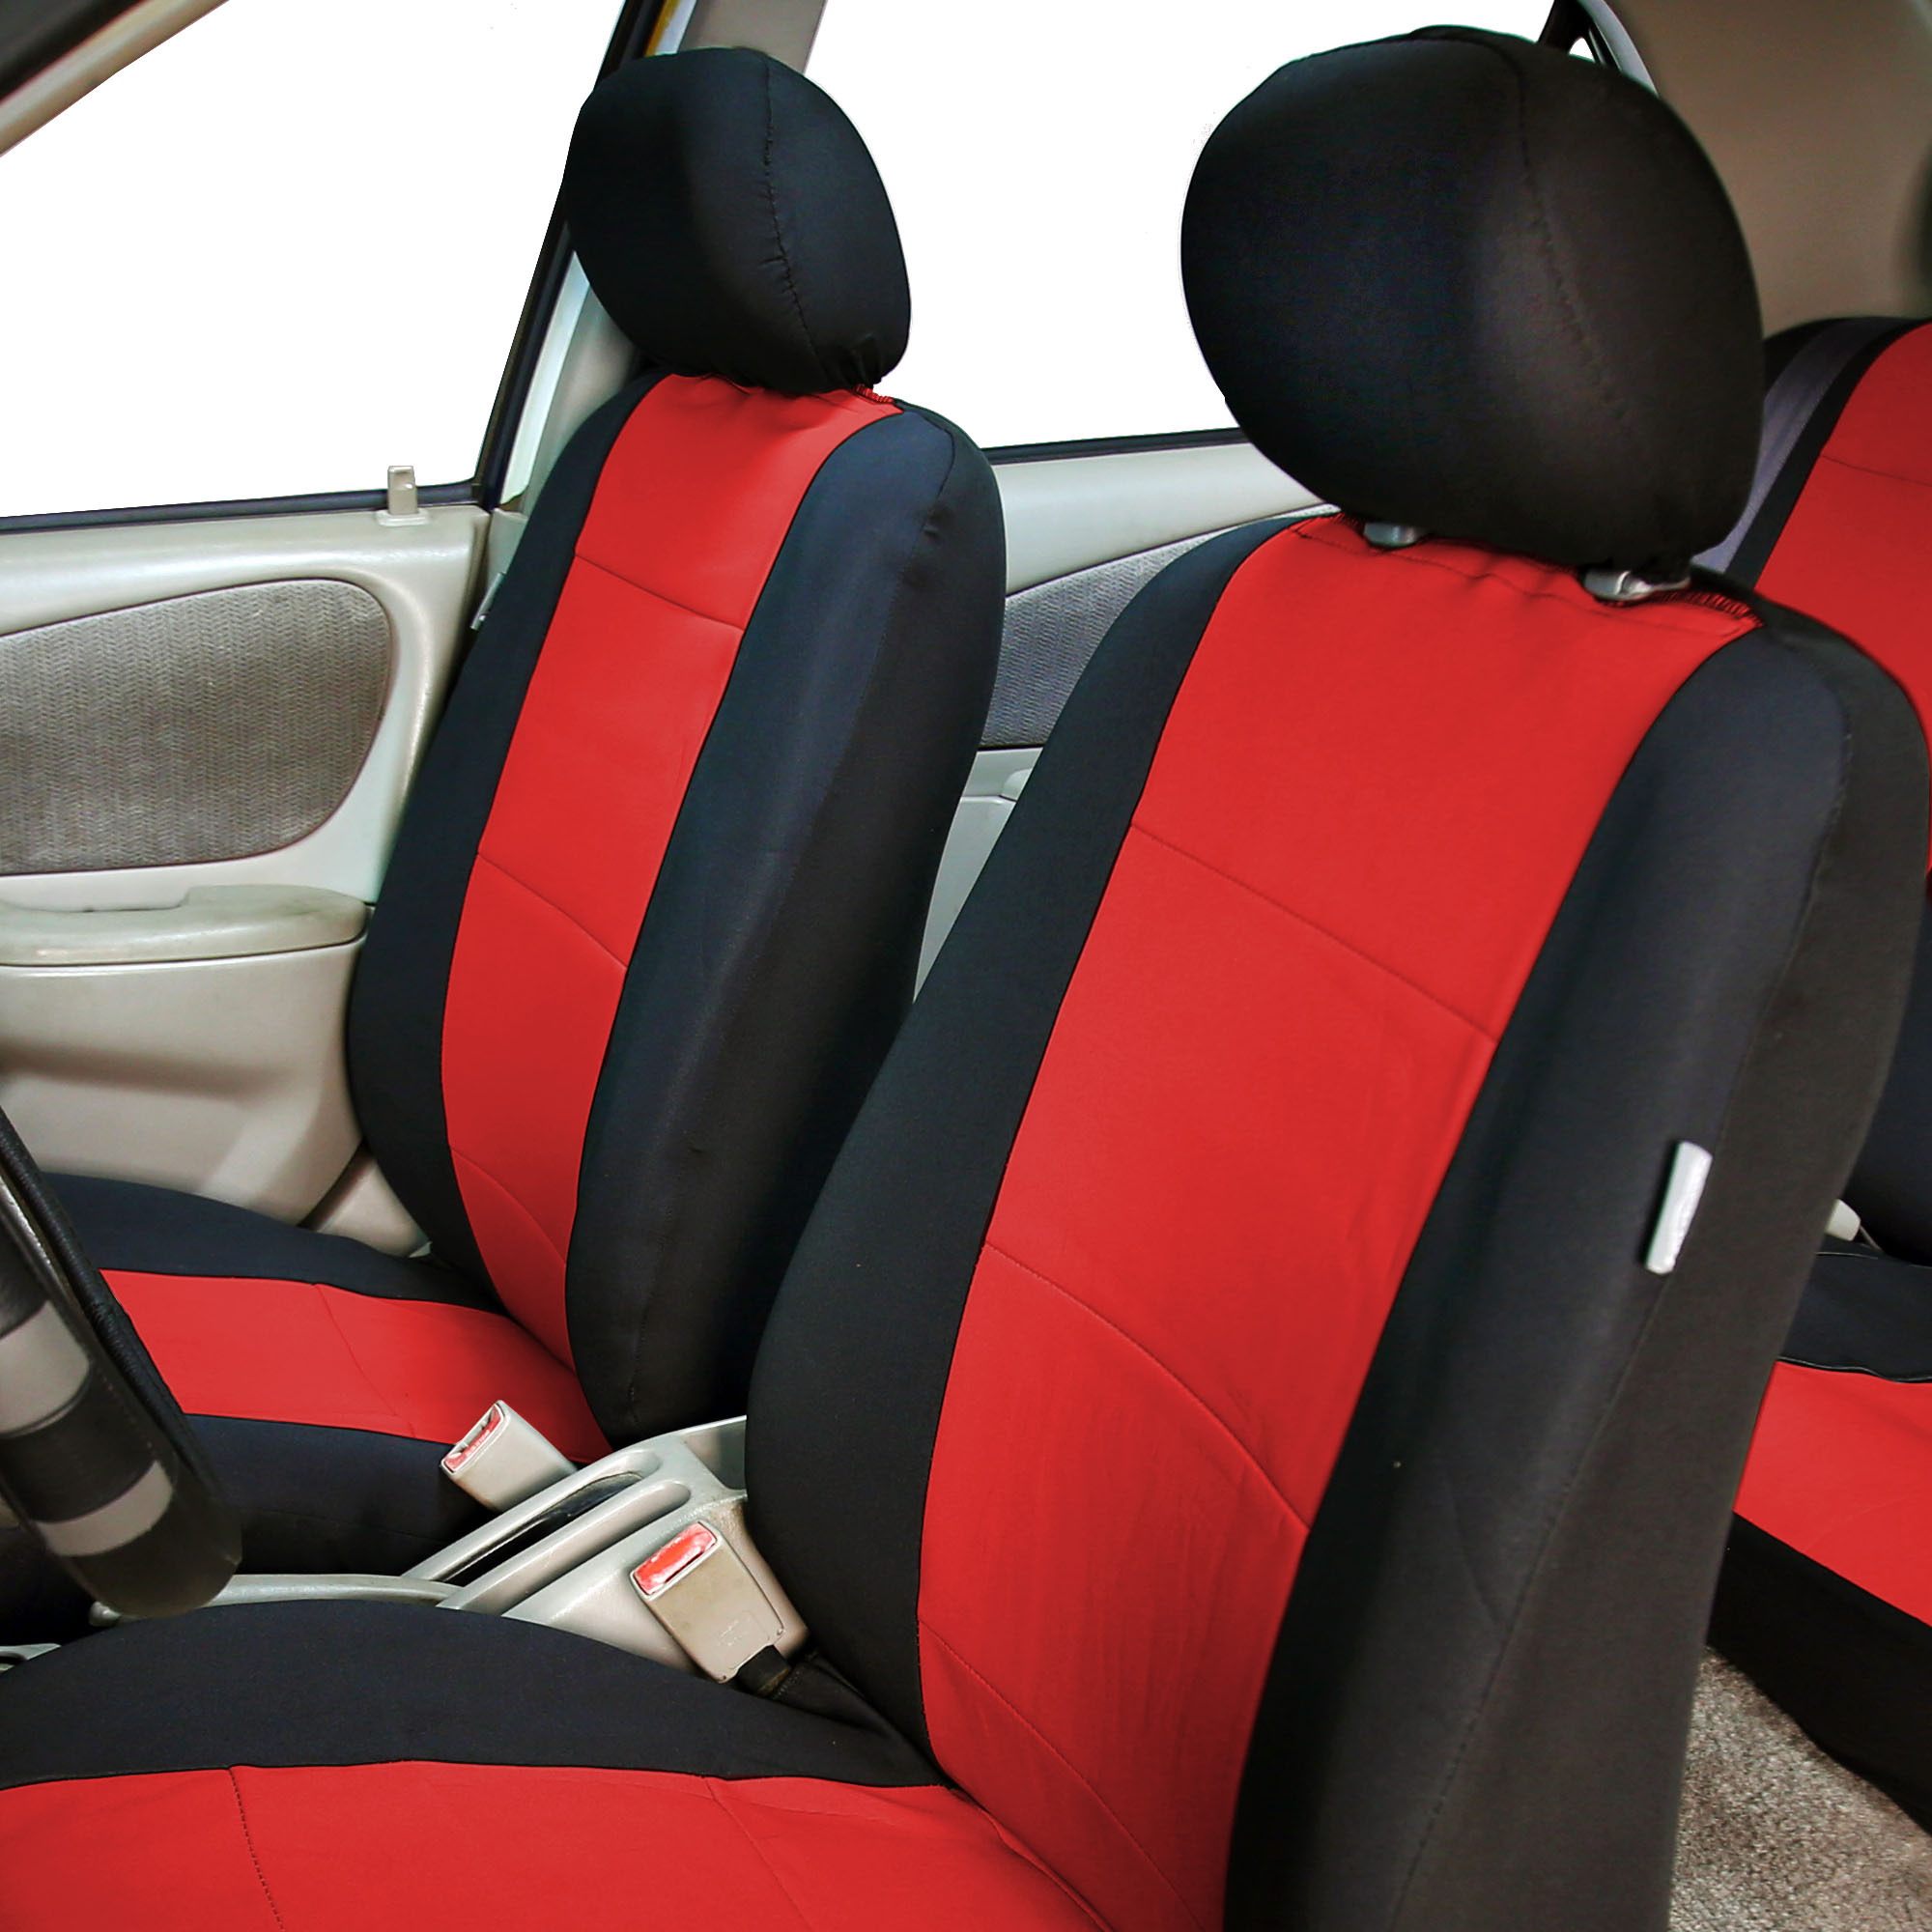 FH Group Neoprene Seat Covers for Sedan, SUV, Truck, Van, Two Front Buckets, Red Black